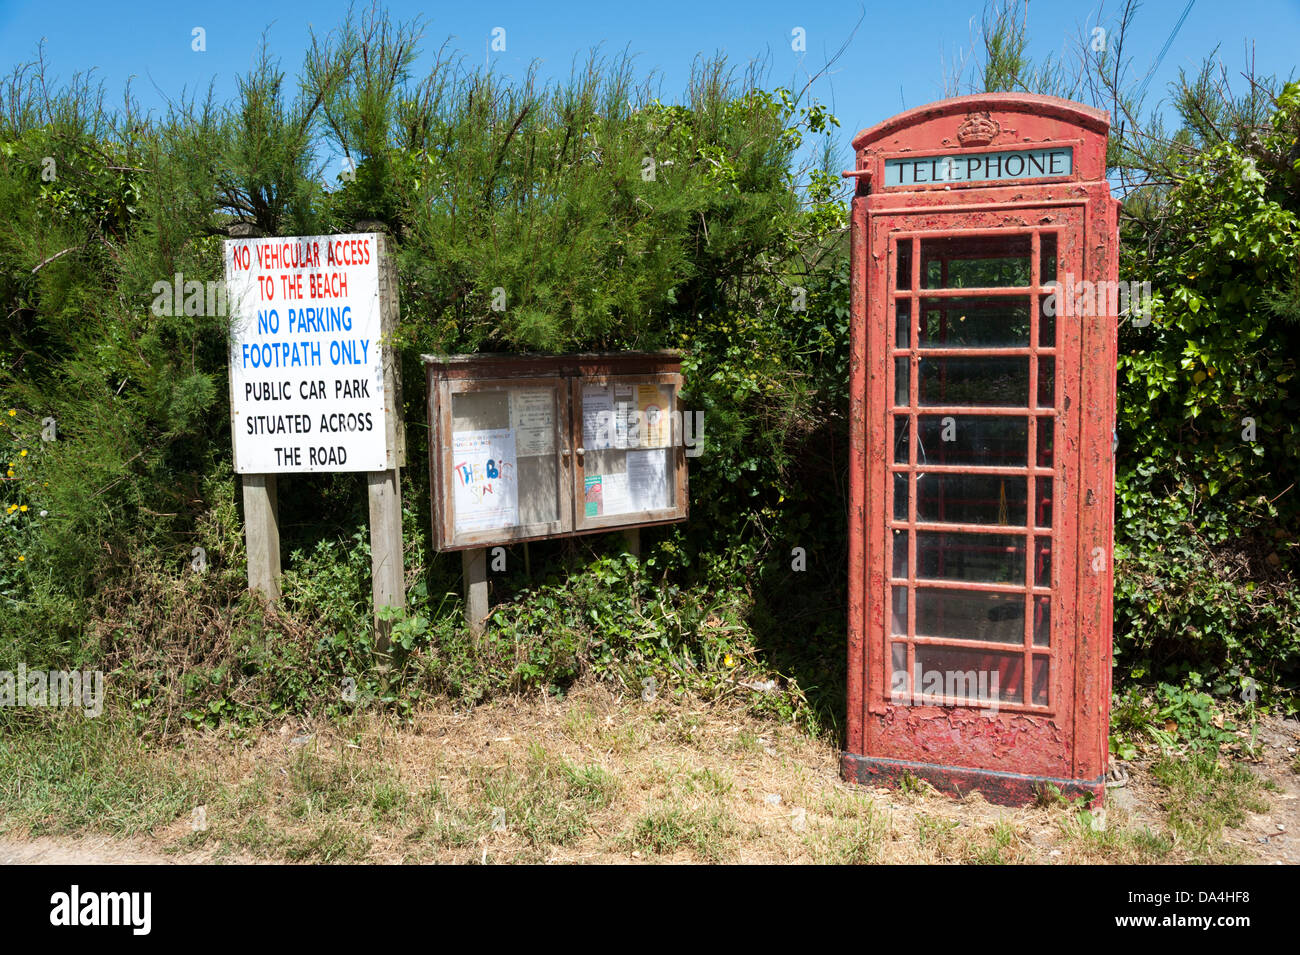 The traditional red telephone box at Porthcothan Bay Cornwall UK - Stock Image